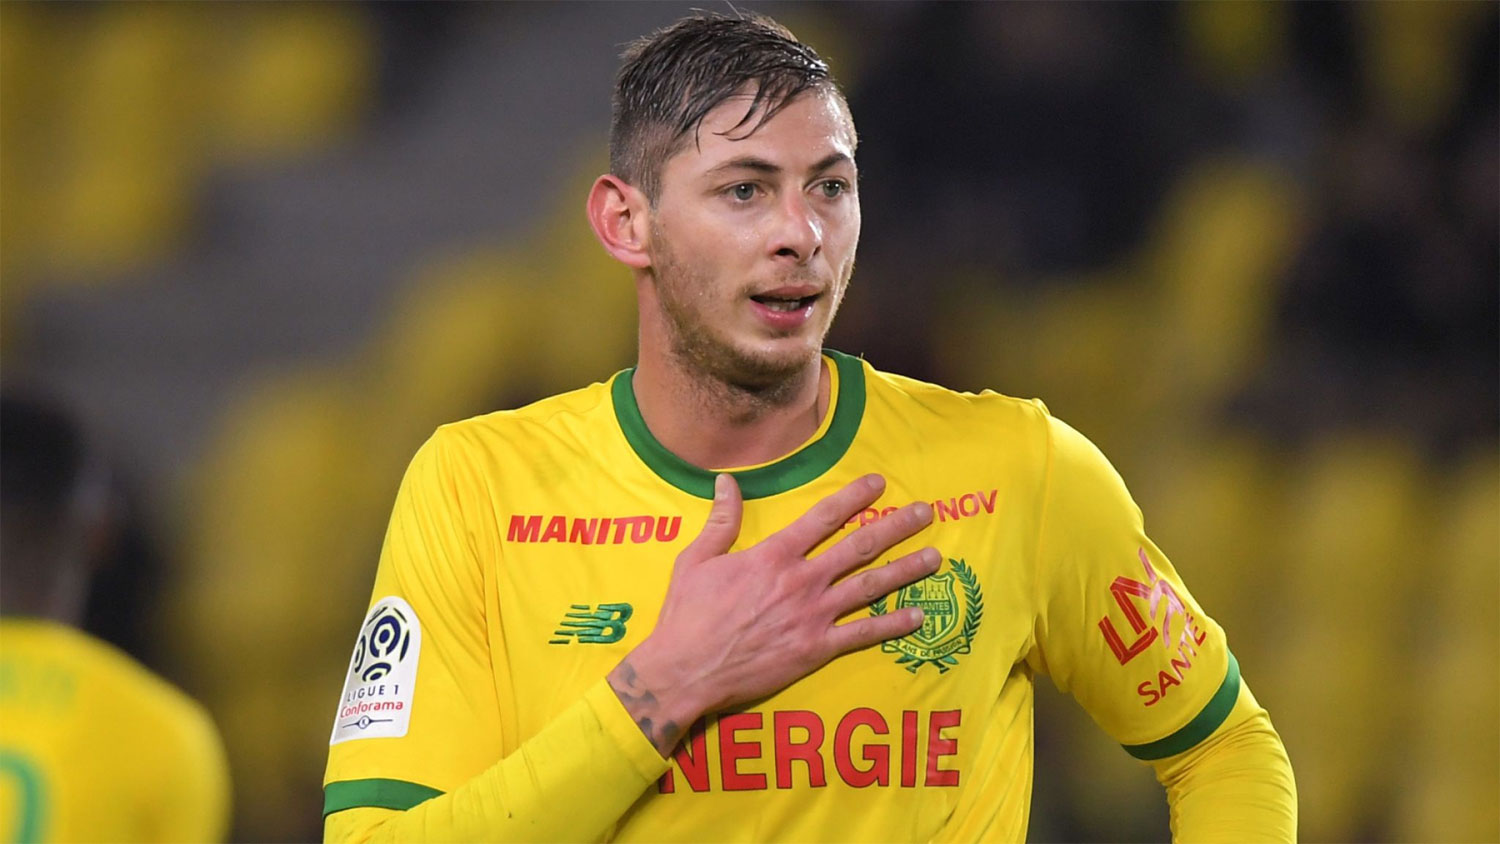 Emiliano Sala crash: Pilot was not licensed for fatal flight, says report